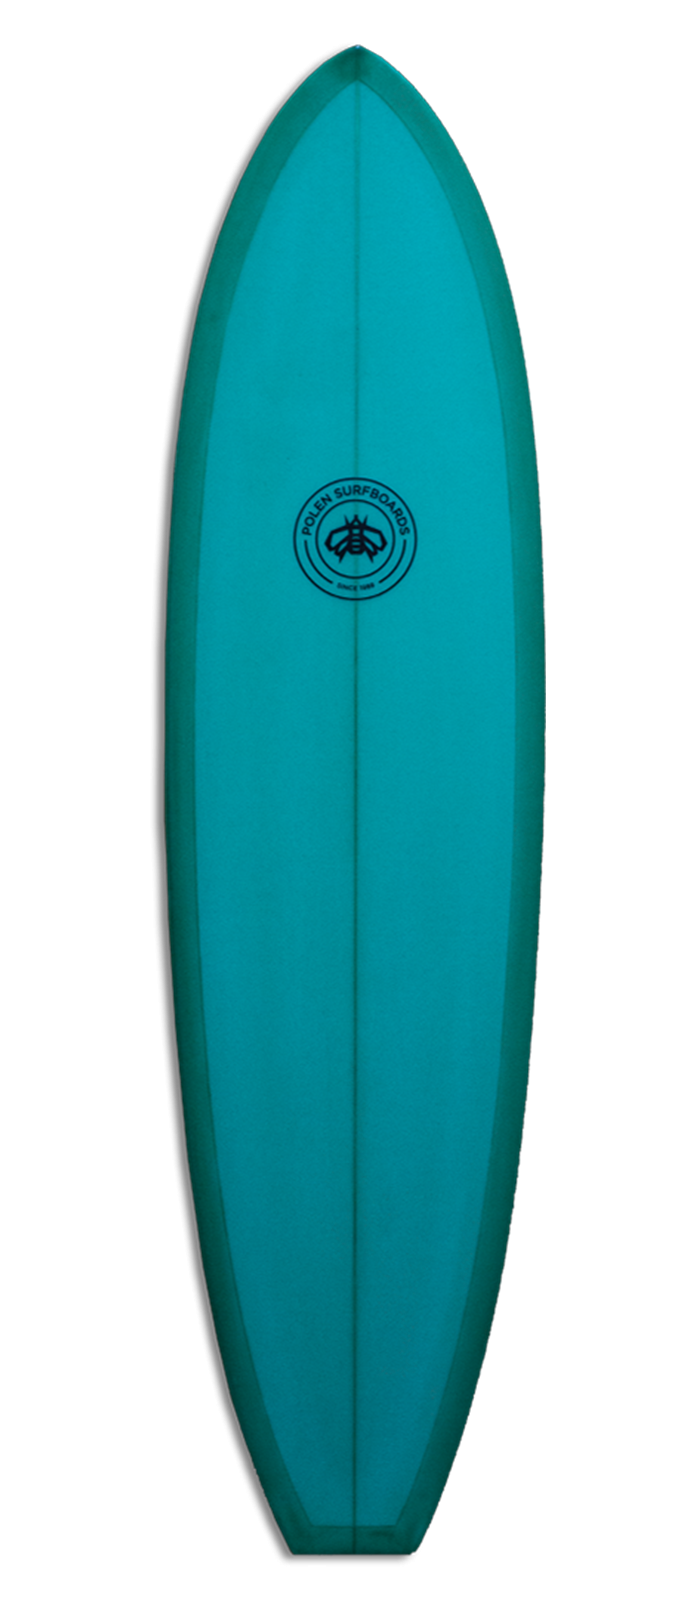 REBEL GRACE surfboard model